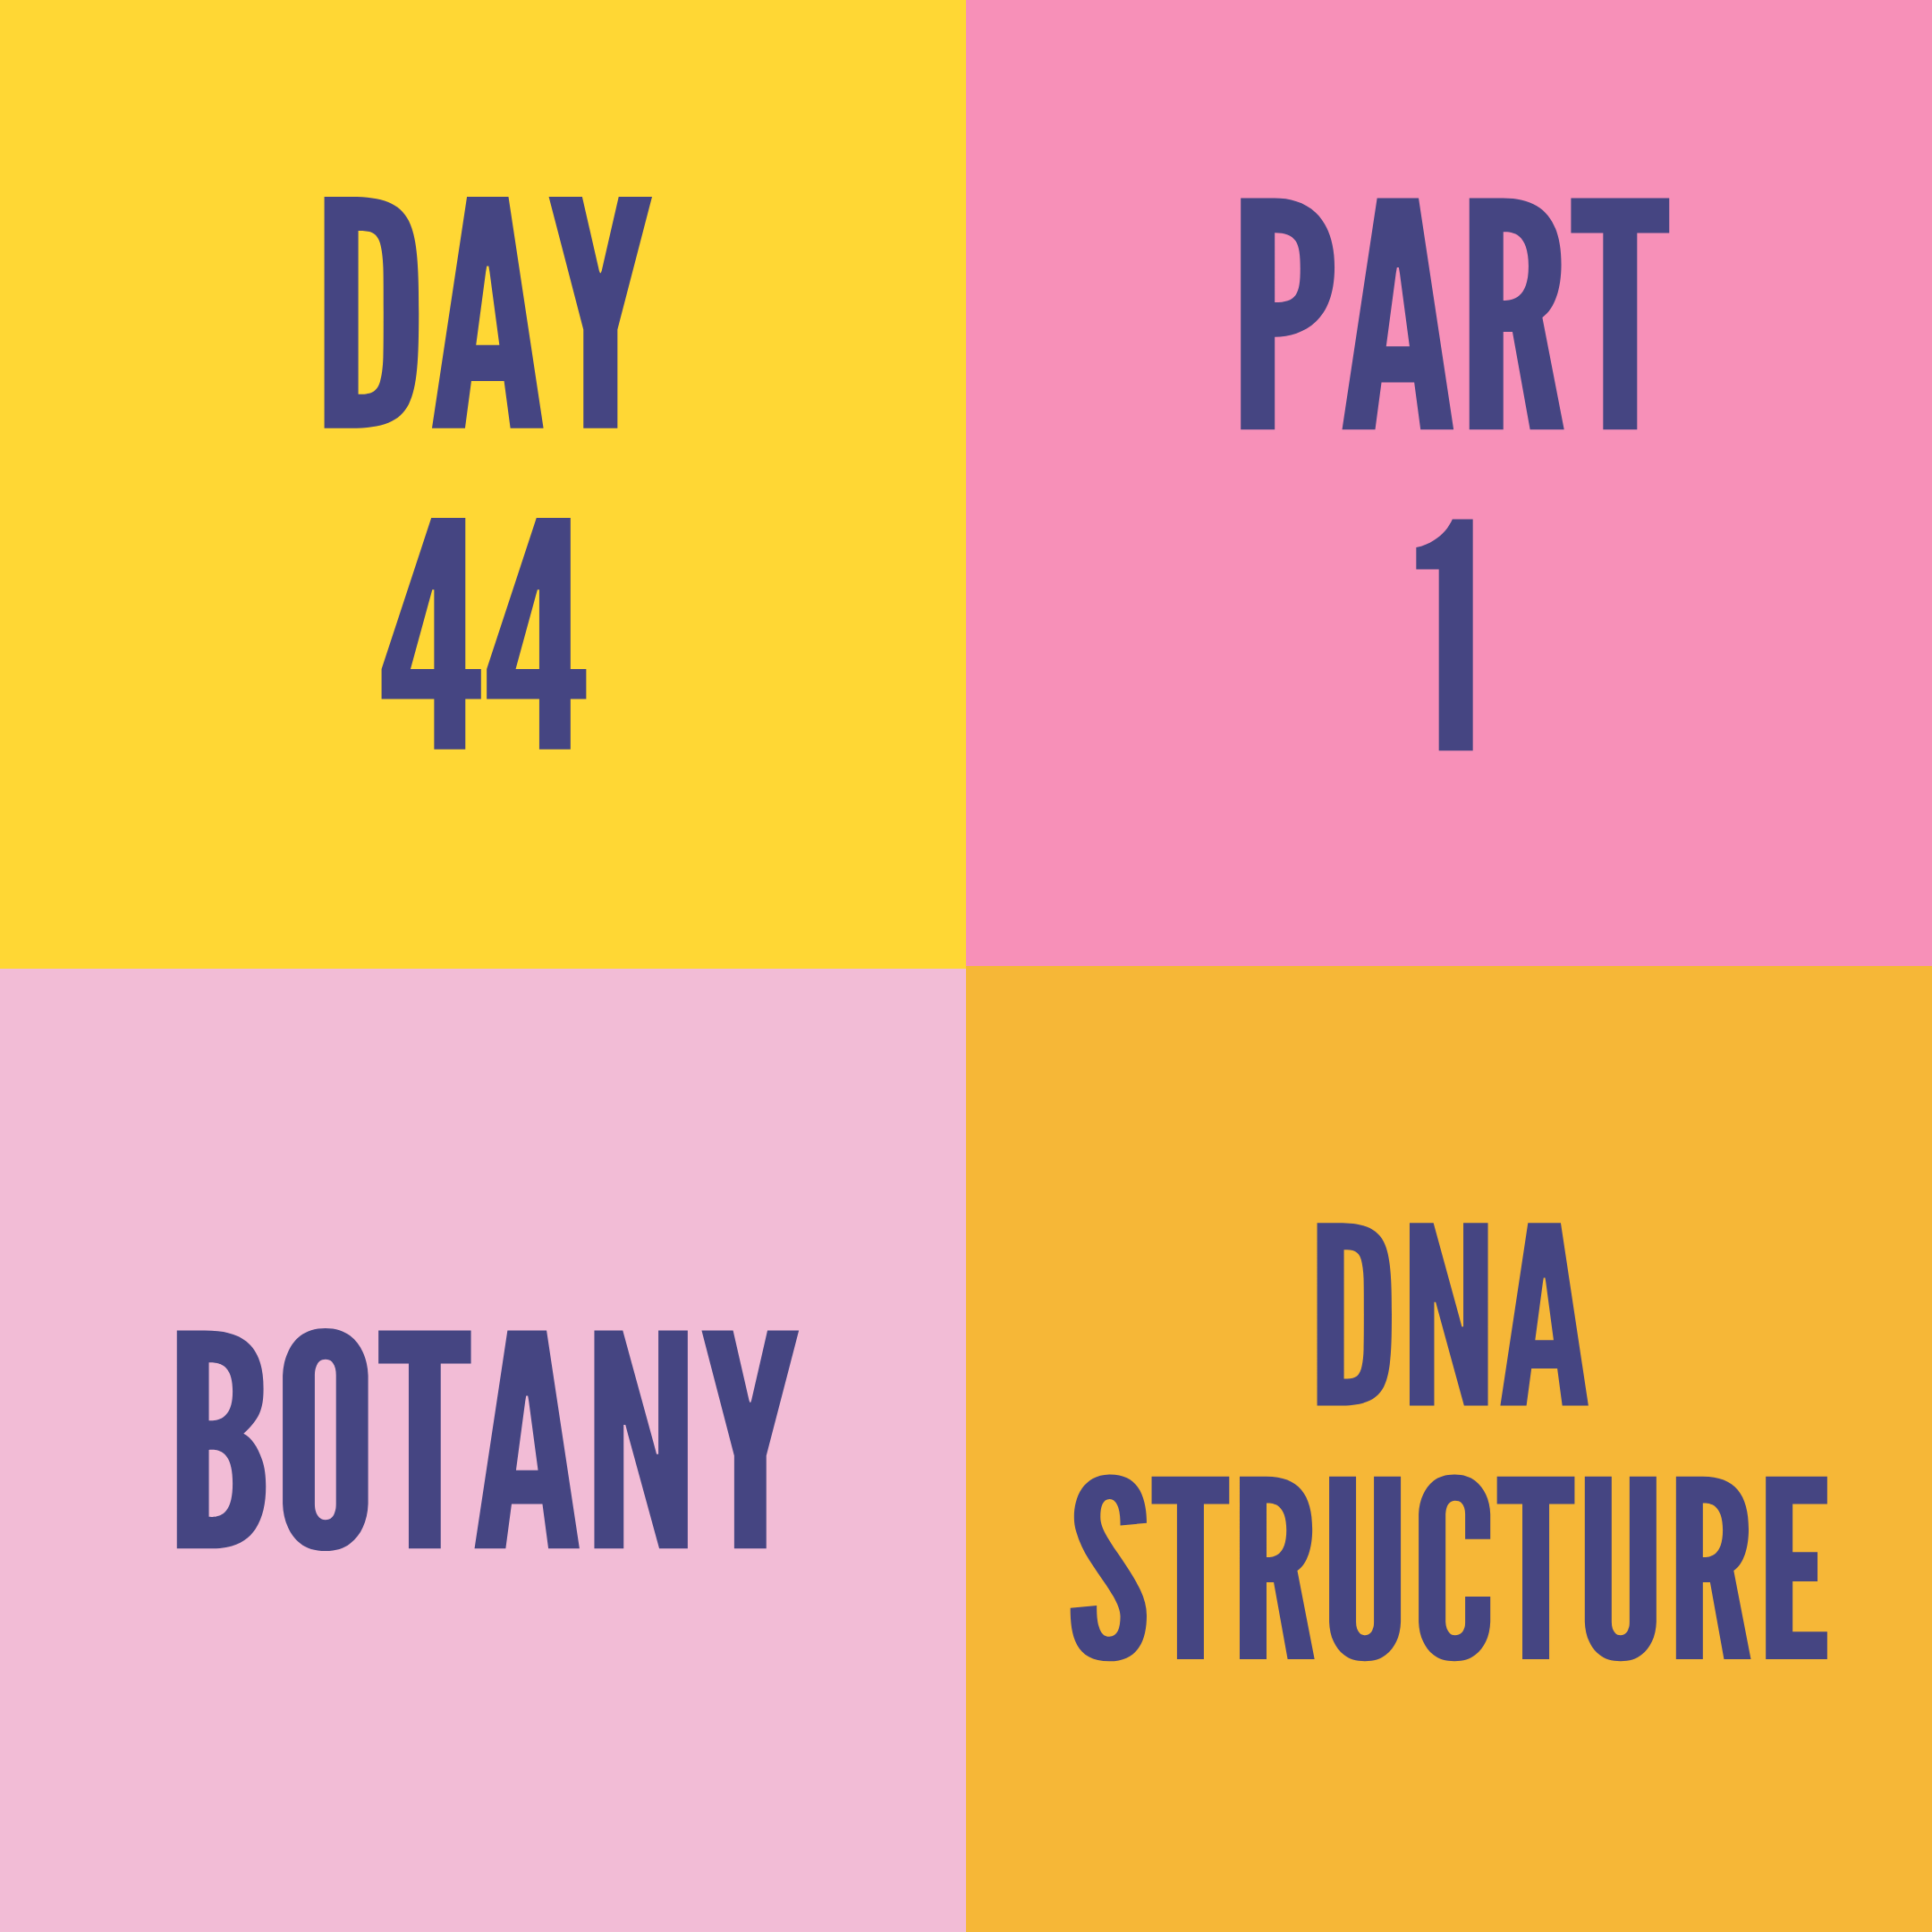 DAY-44 PART-1 DNA STRUCTURE